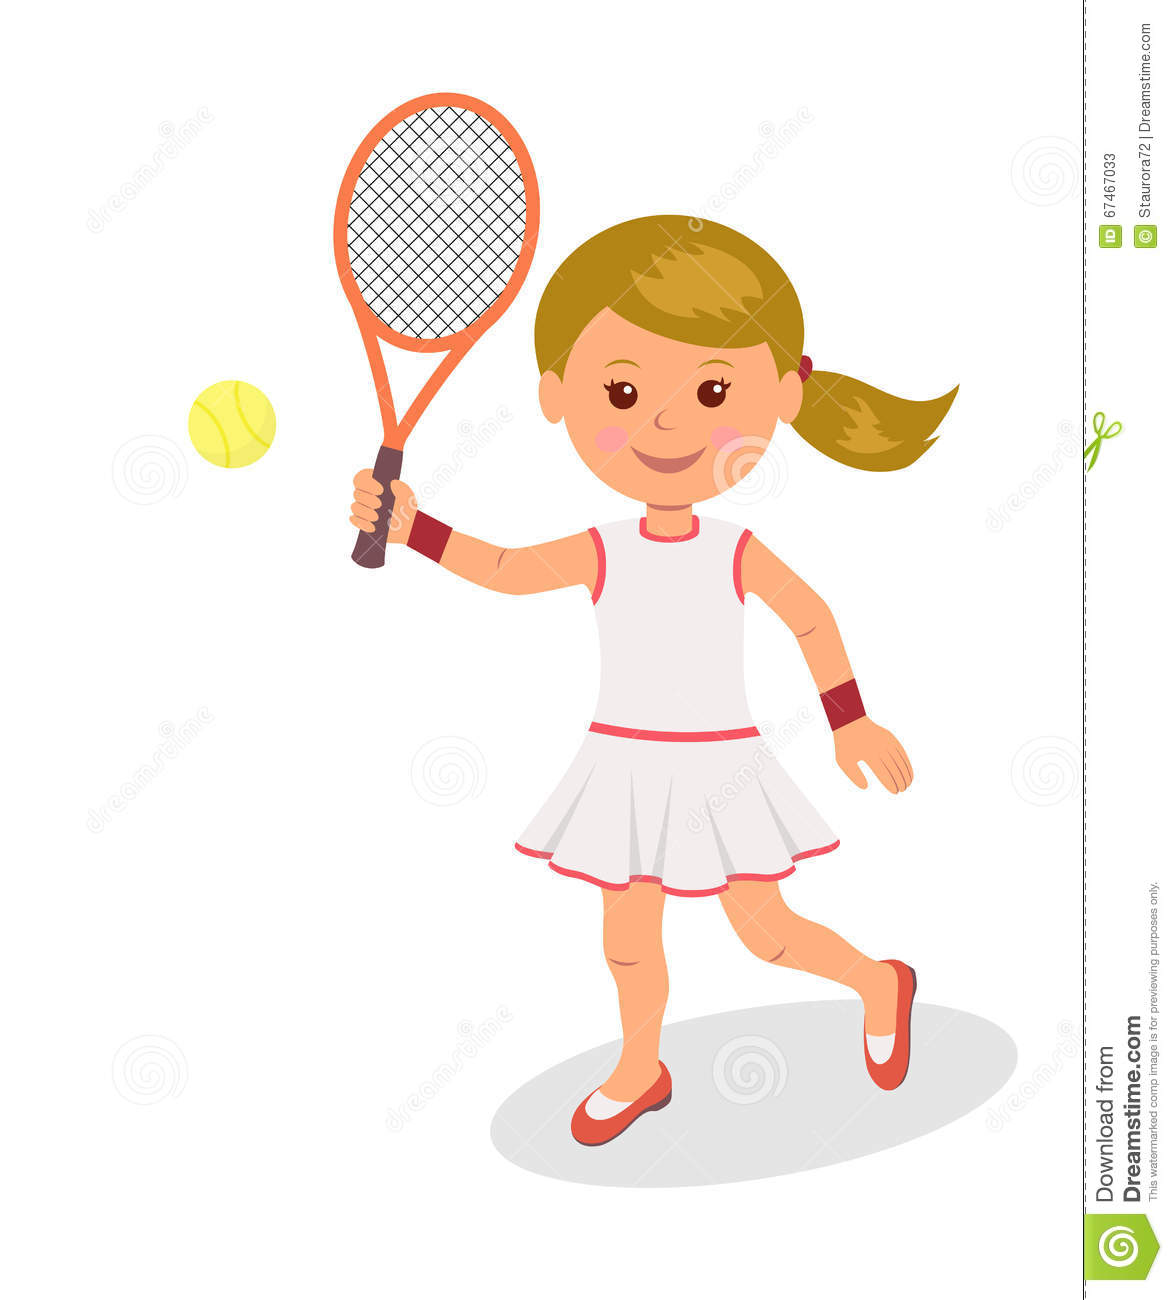 la fille joue au tennis le caract re d 39 une femme avec la raquette et la balle de tennis sur un. Black Bedroom Furniture Sets. Home Design Ideas